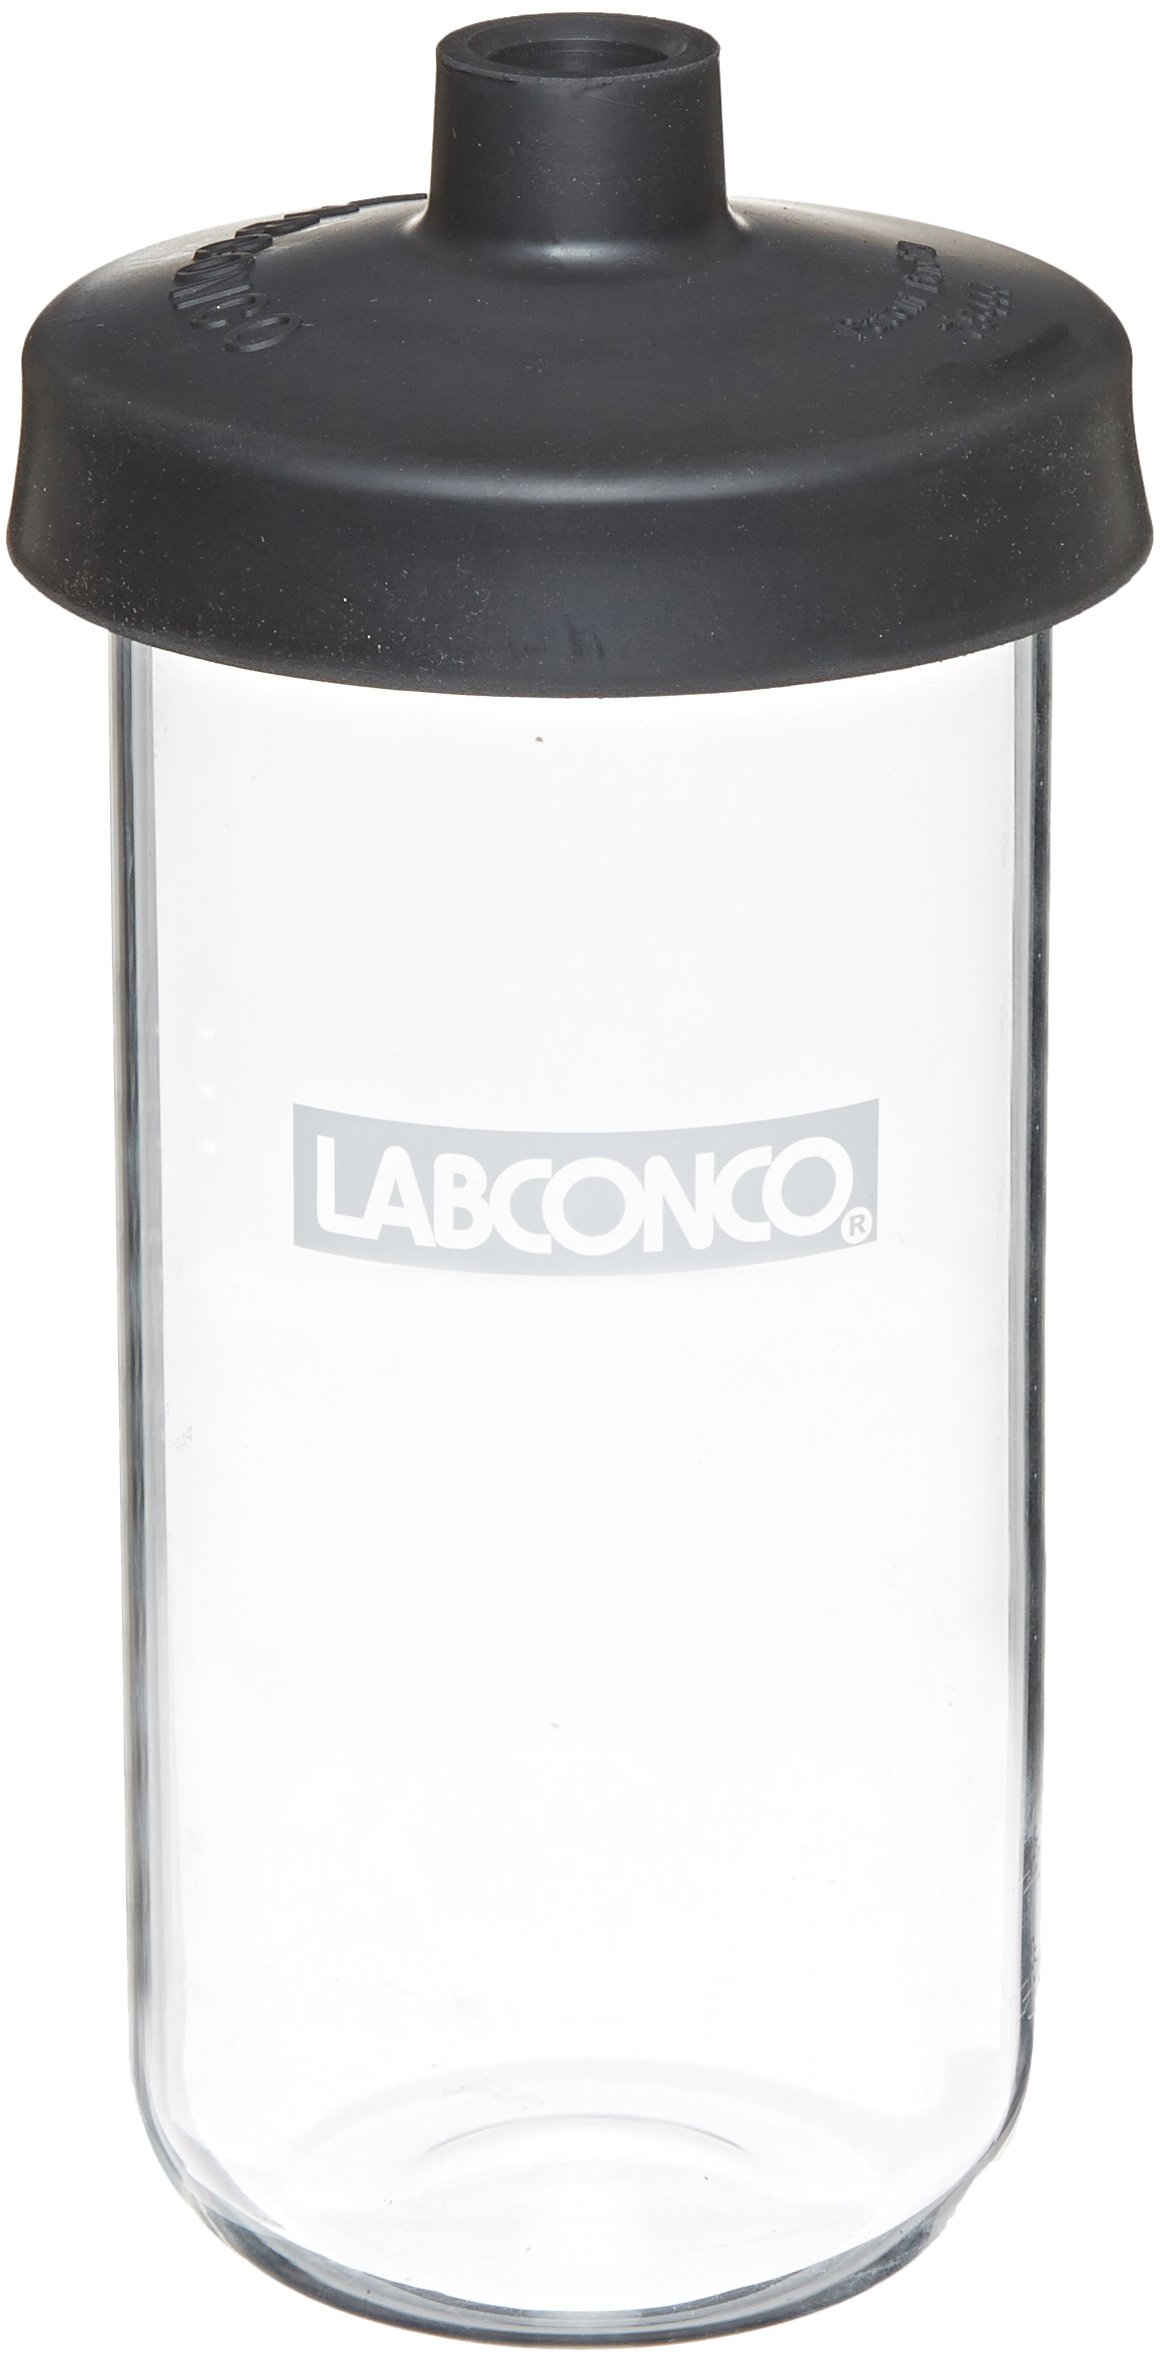 Labconco Fast Freeze 7540900 Borosilicate Glass Wide Mouth Flat Bottom Complete Flask, 900ml Capacity by Labconco